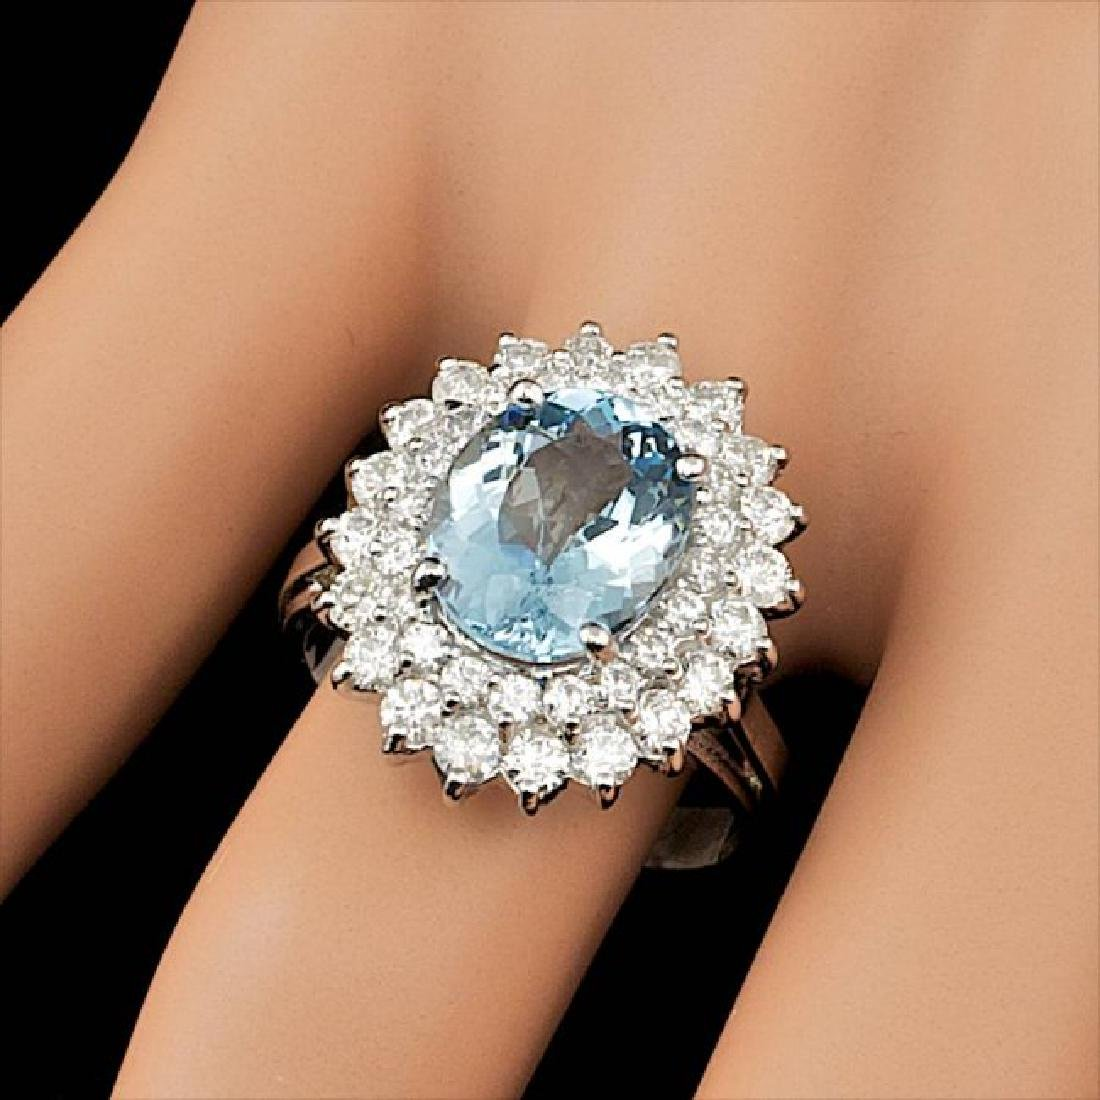 14k Gold 3.00ct Aquamarine 1.60ct Diamond Ring - 5